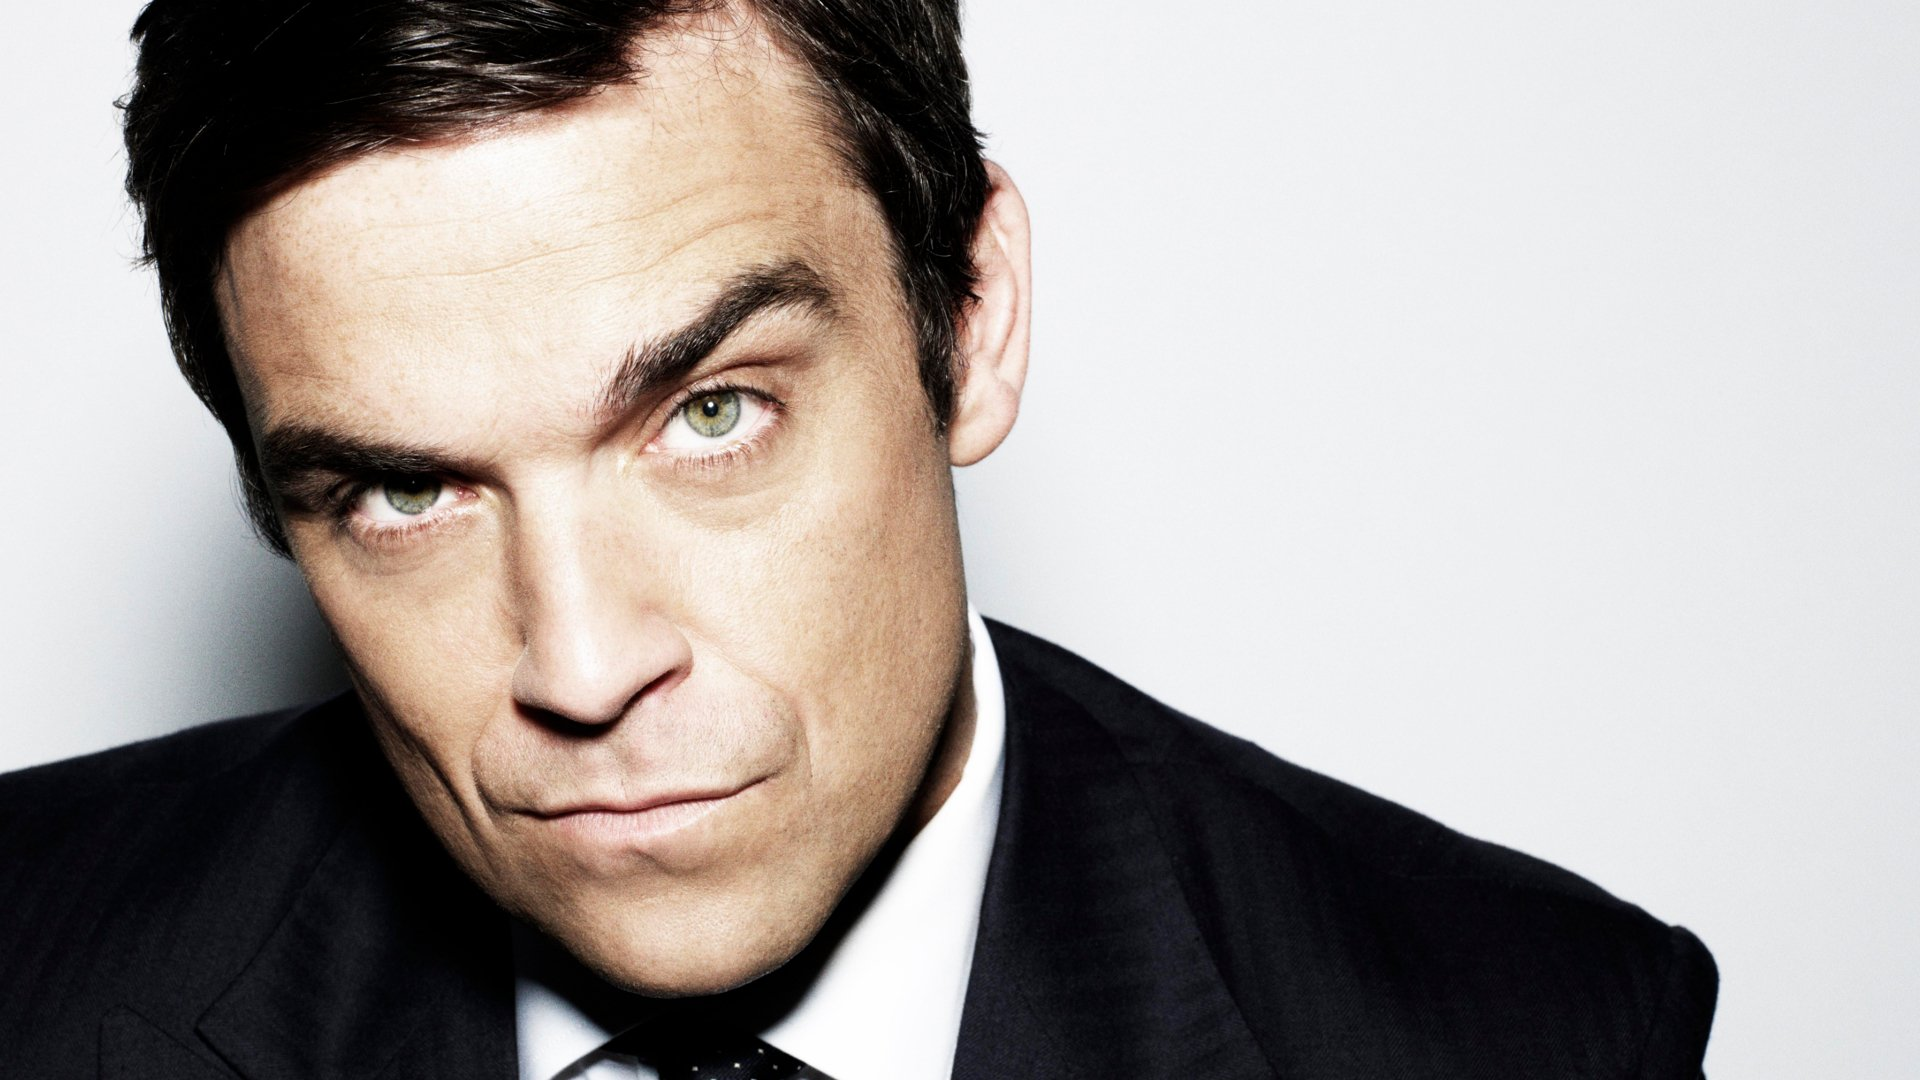 Robbie Williams HD Wallpaper Background Image 1920x1080 ID 1920x1080